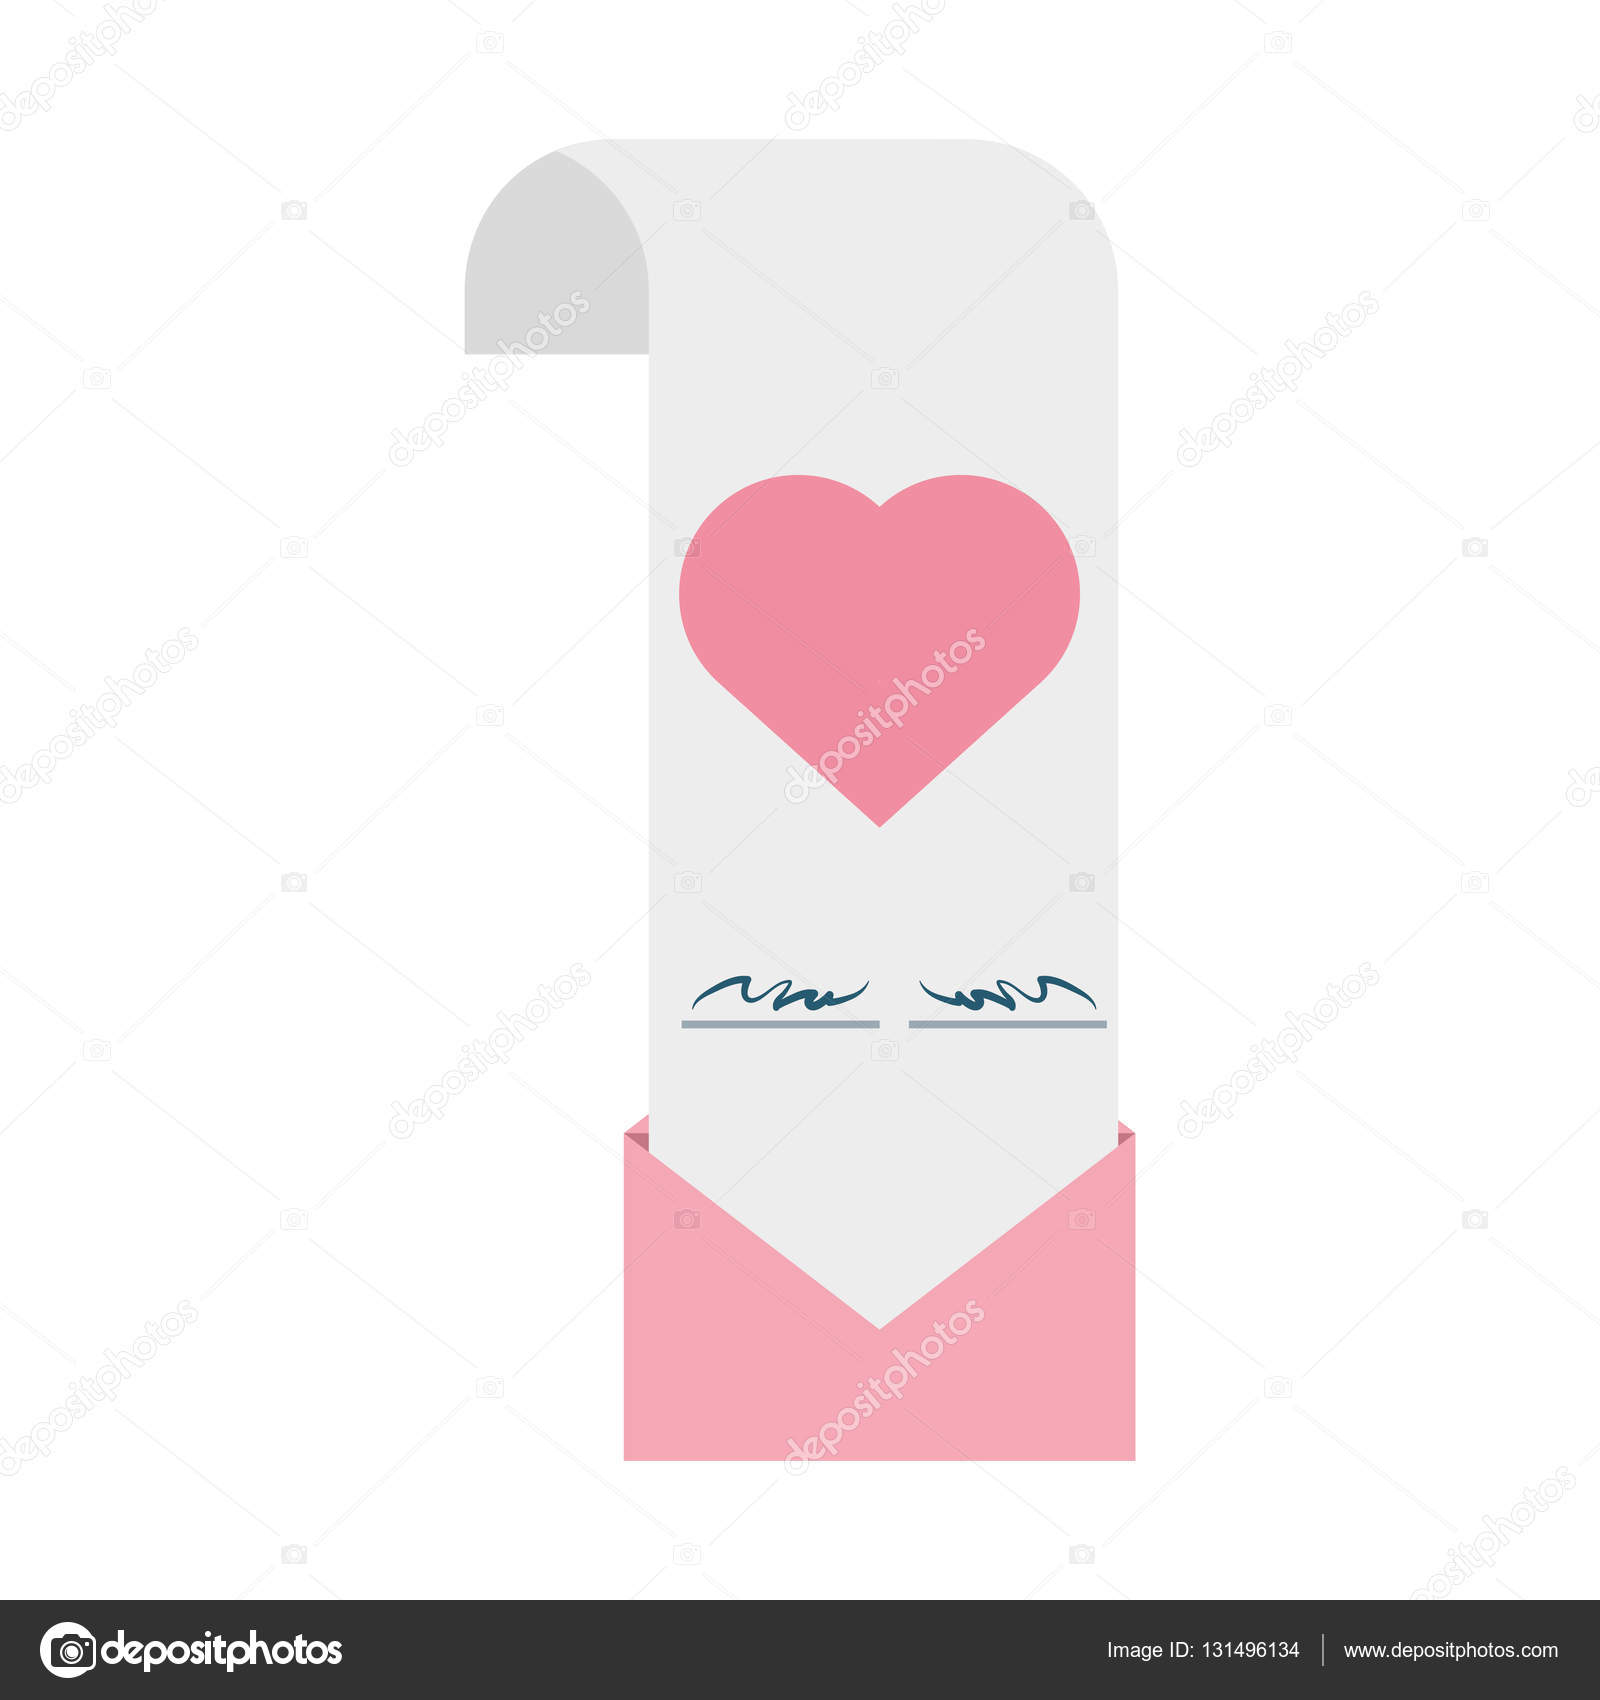 Wedding invitation card pink heart envelope stock vector djv wedding invitation card pink heart envelope vector illustration eps 10 vector by djv stopboris Choice Image